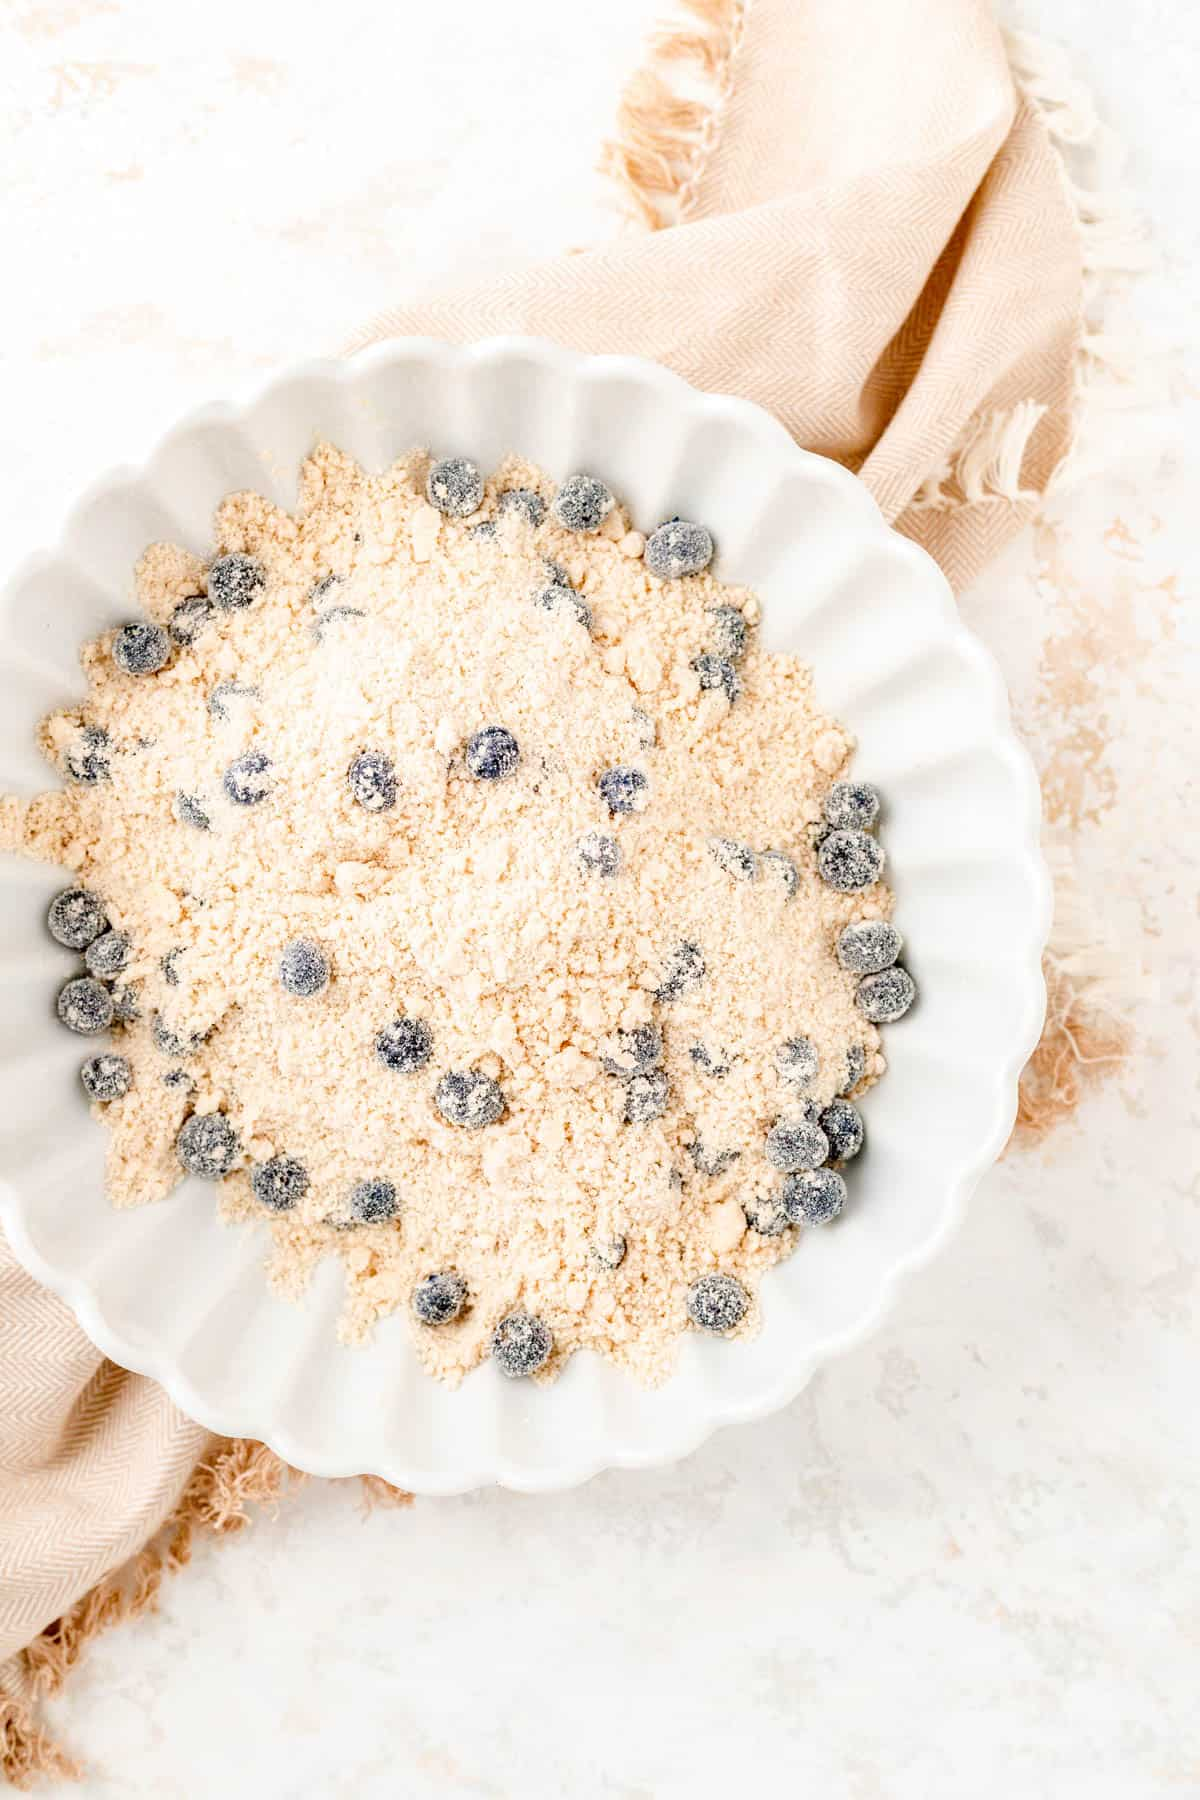 dry ingredients with butter cut in and blueberries as well in a white bowl